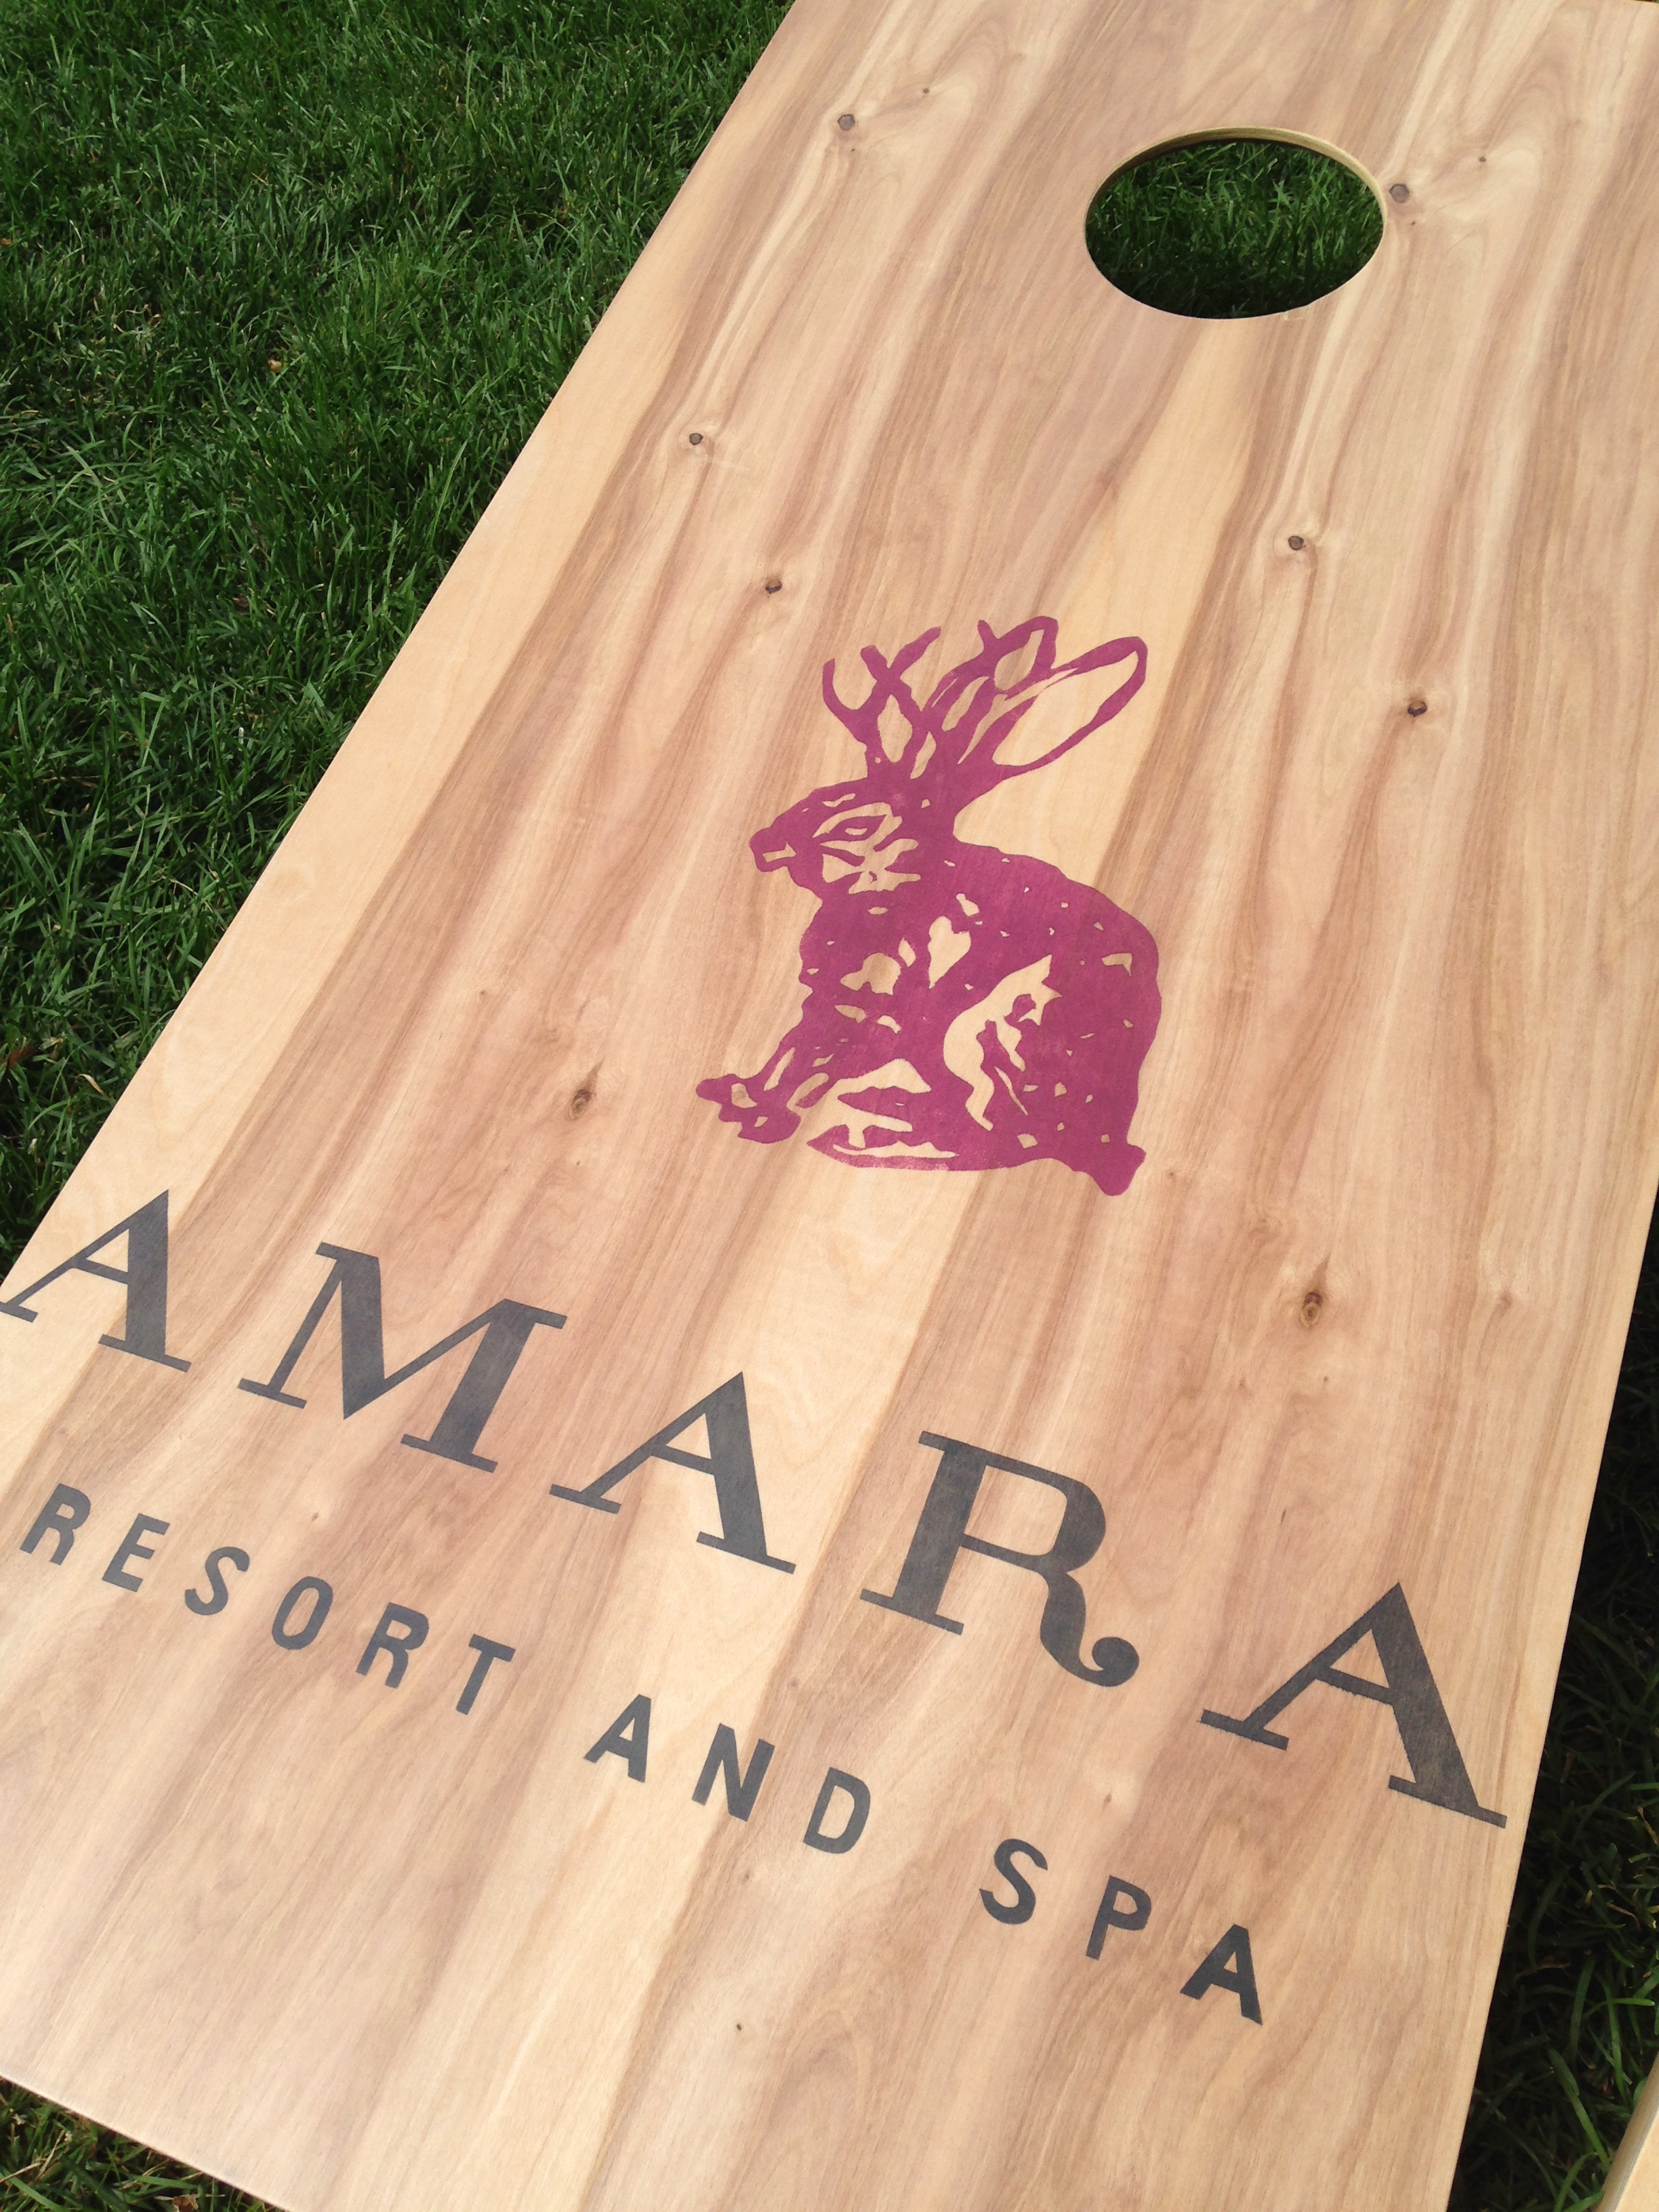 Arizona's Amara Resort Game